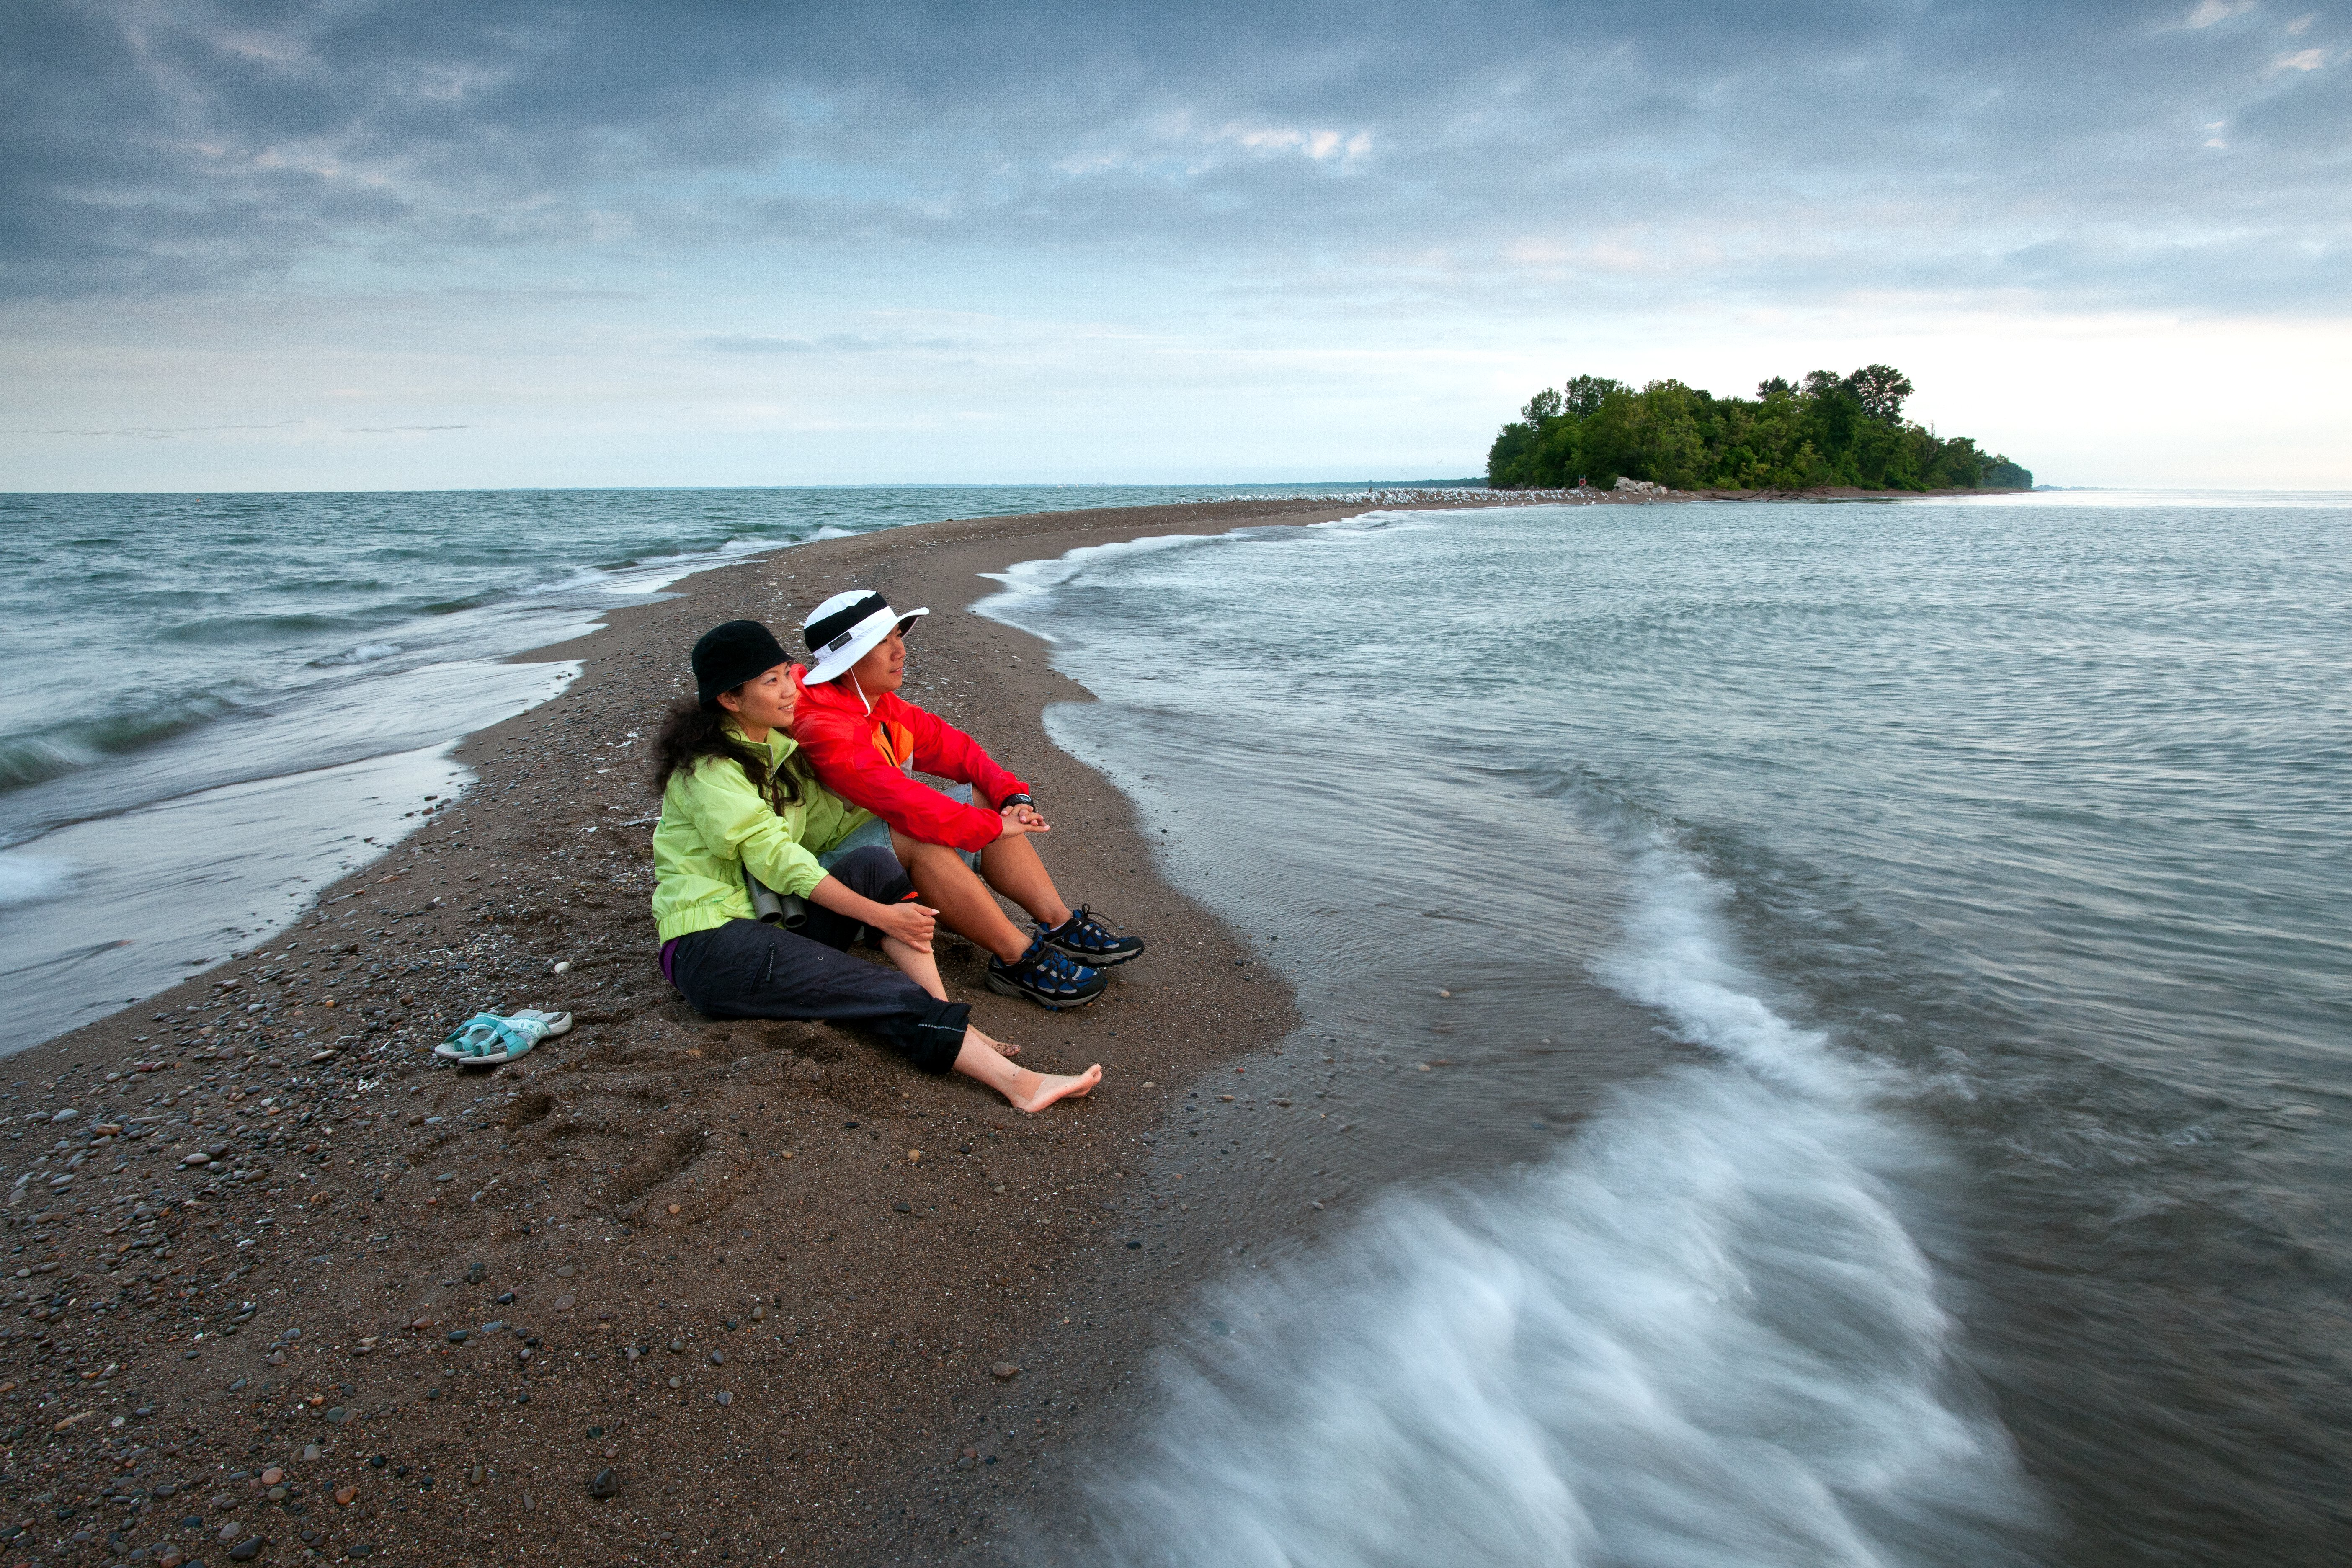 Just the tip: the southernmost point of mainland Canada is at Point Pelee National Park.